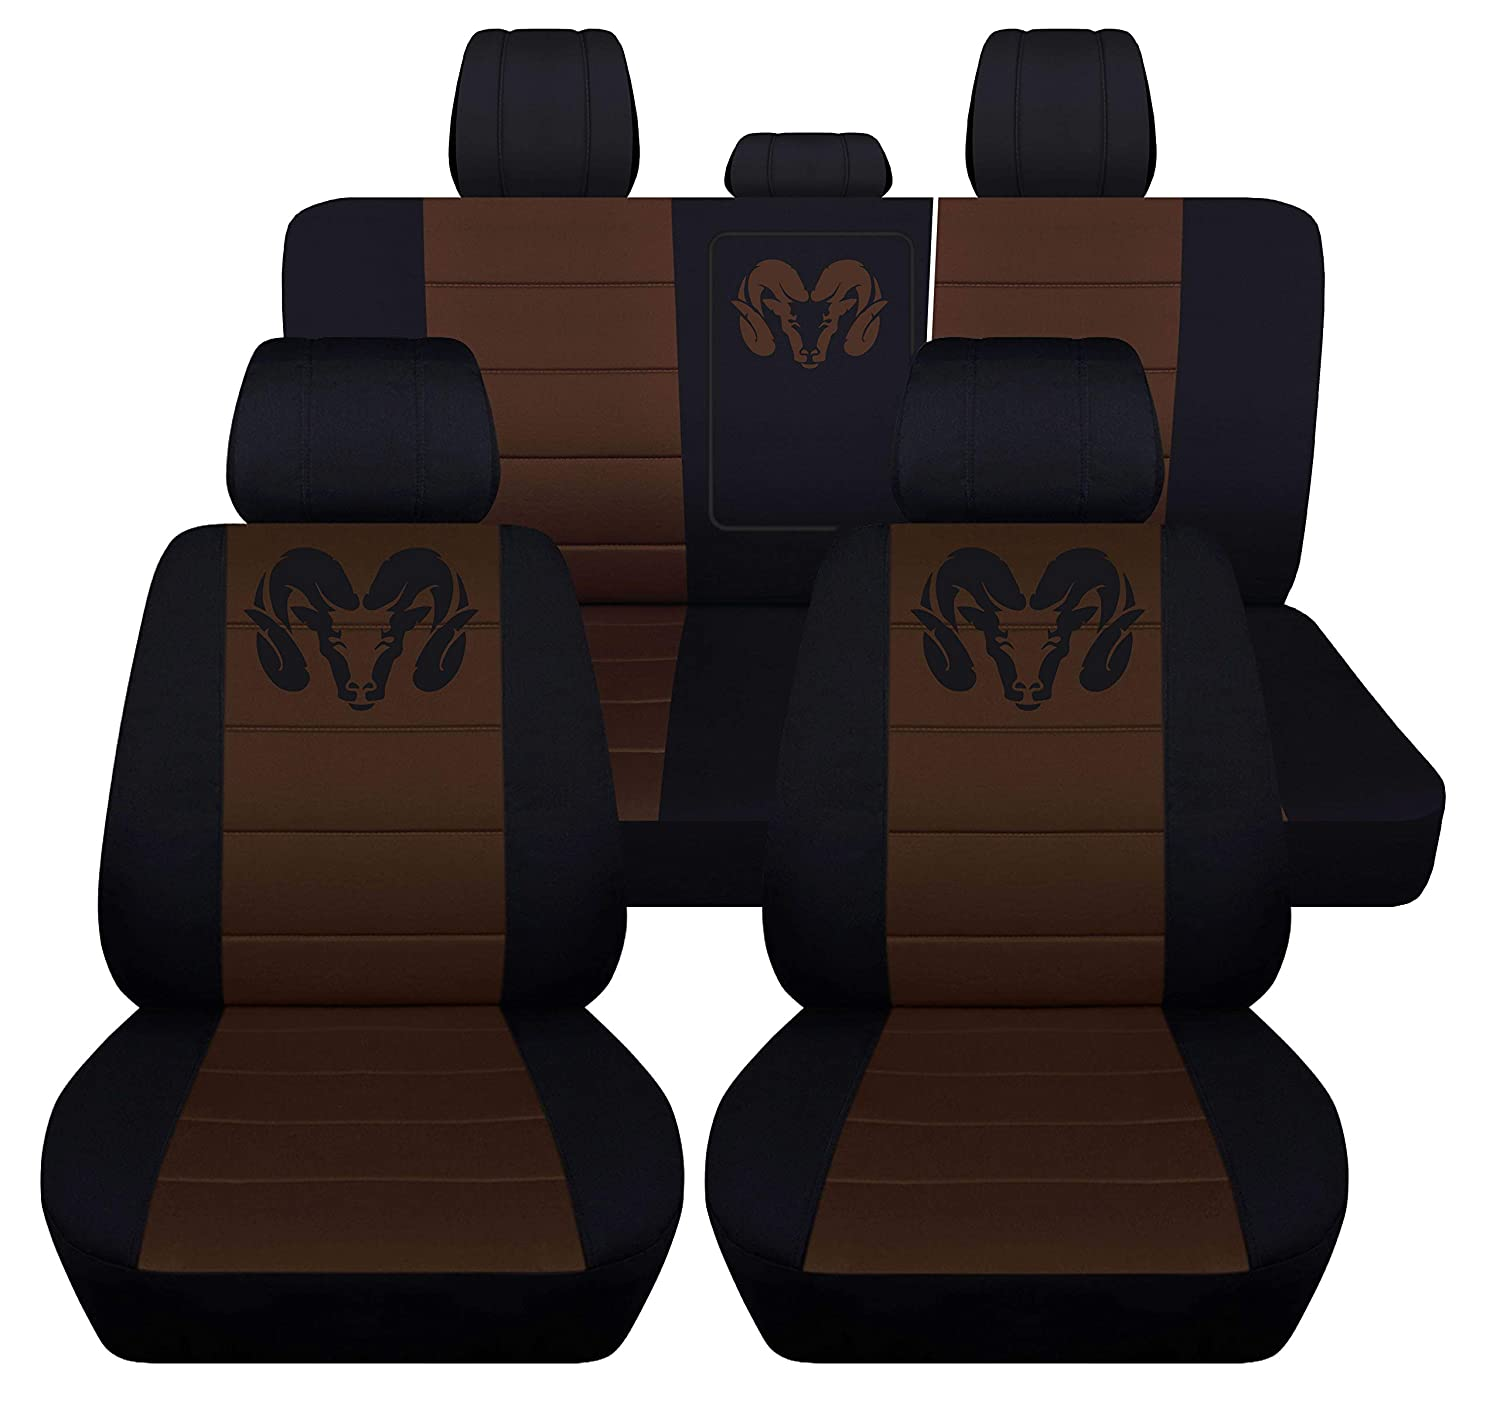 40 20 40 Front and Rear Seat Covers for 2013 to 2018 Dodge Ram 22 Color Options Solid Rear Bench, Black Red